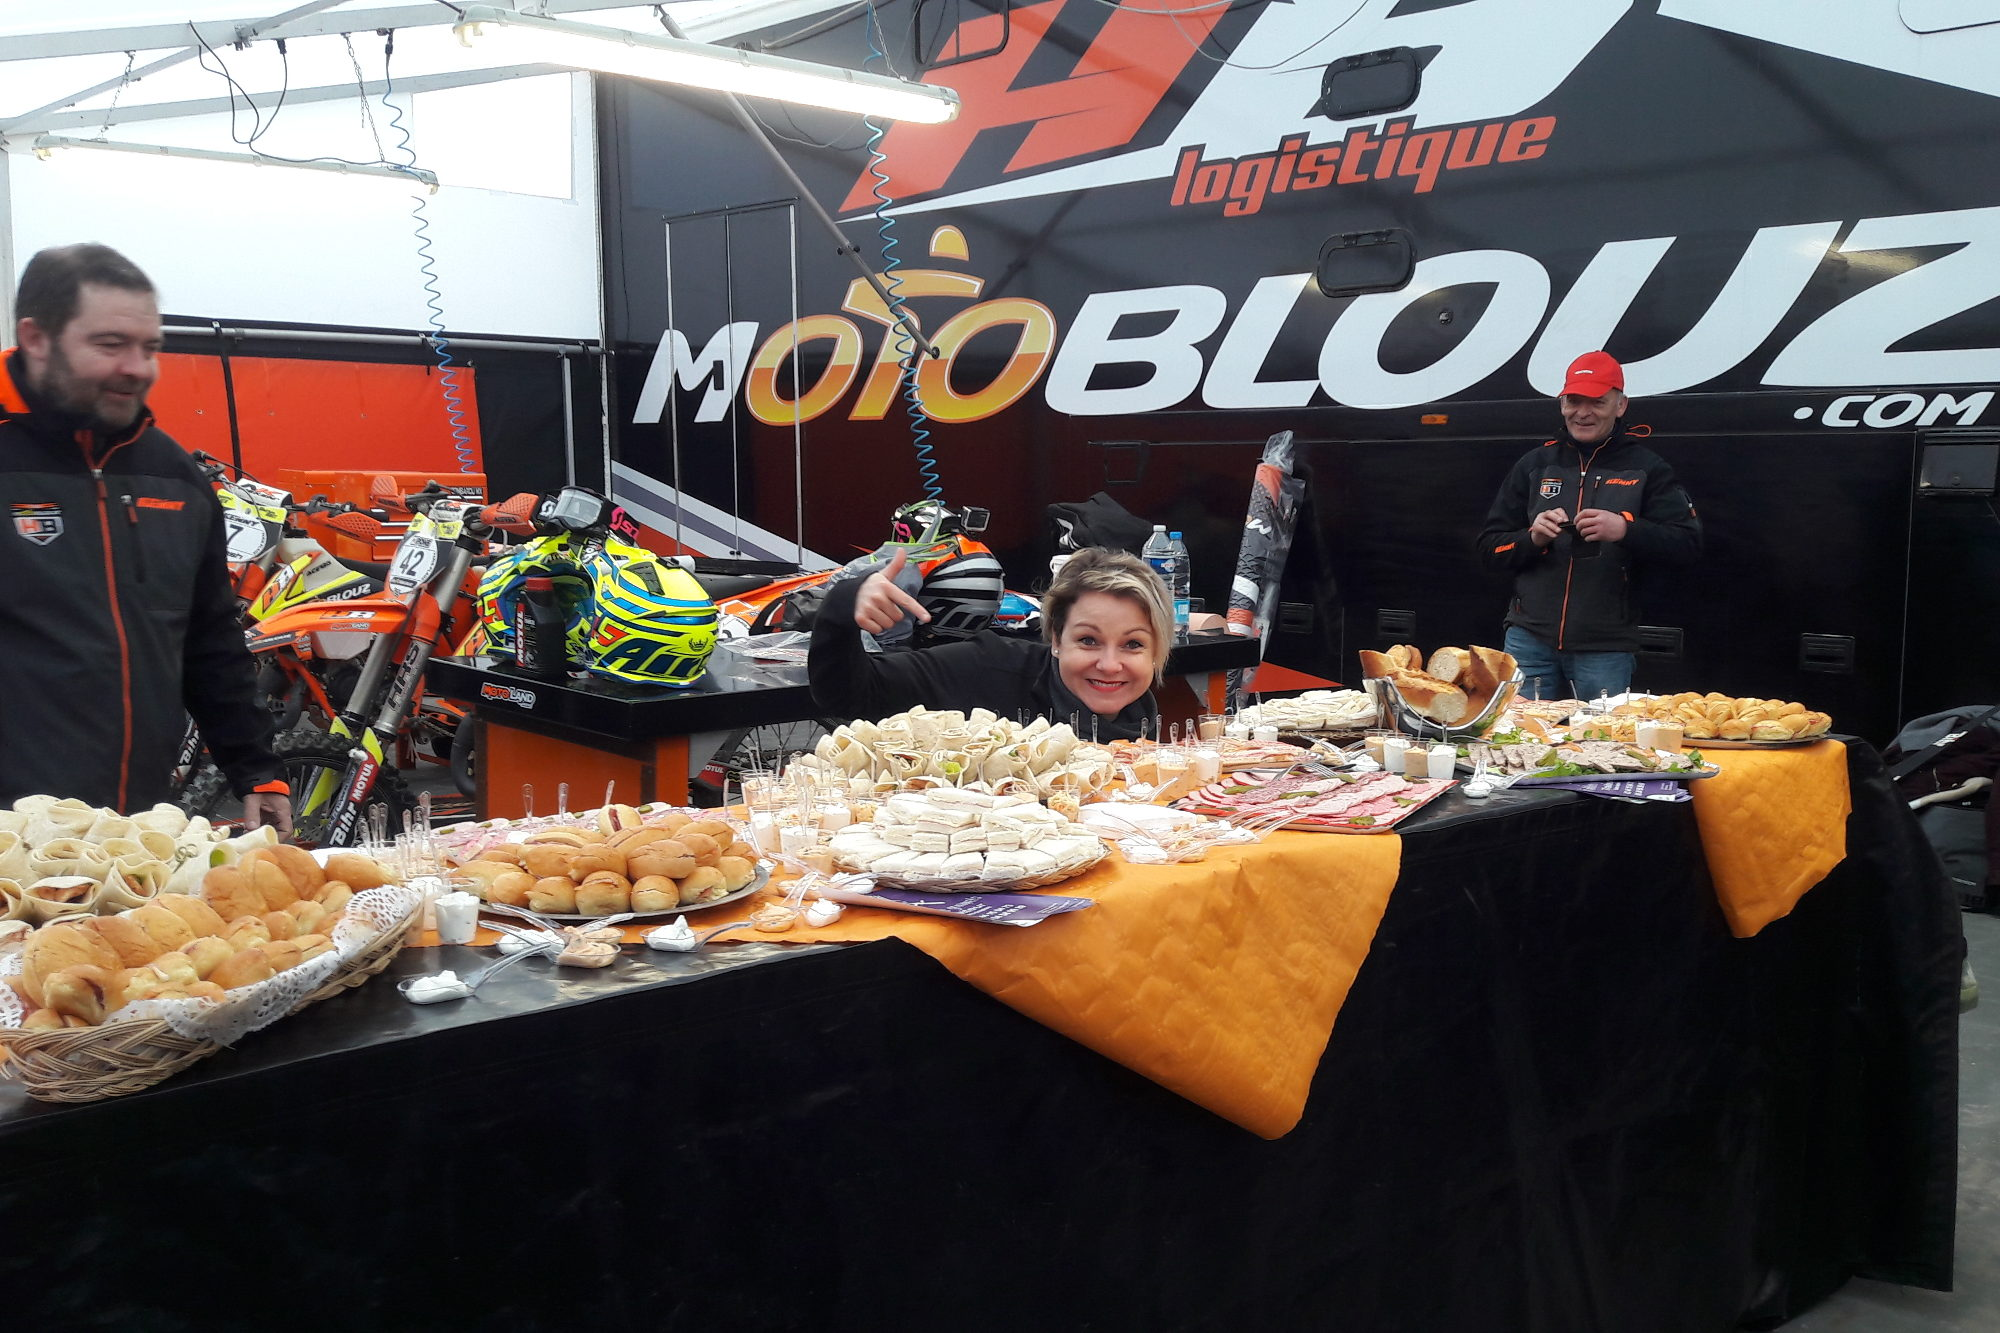 Le sable, ça creuse ! Bienvenue au buffet du team Motoblouz HB Racing.